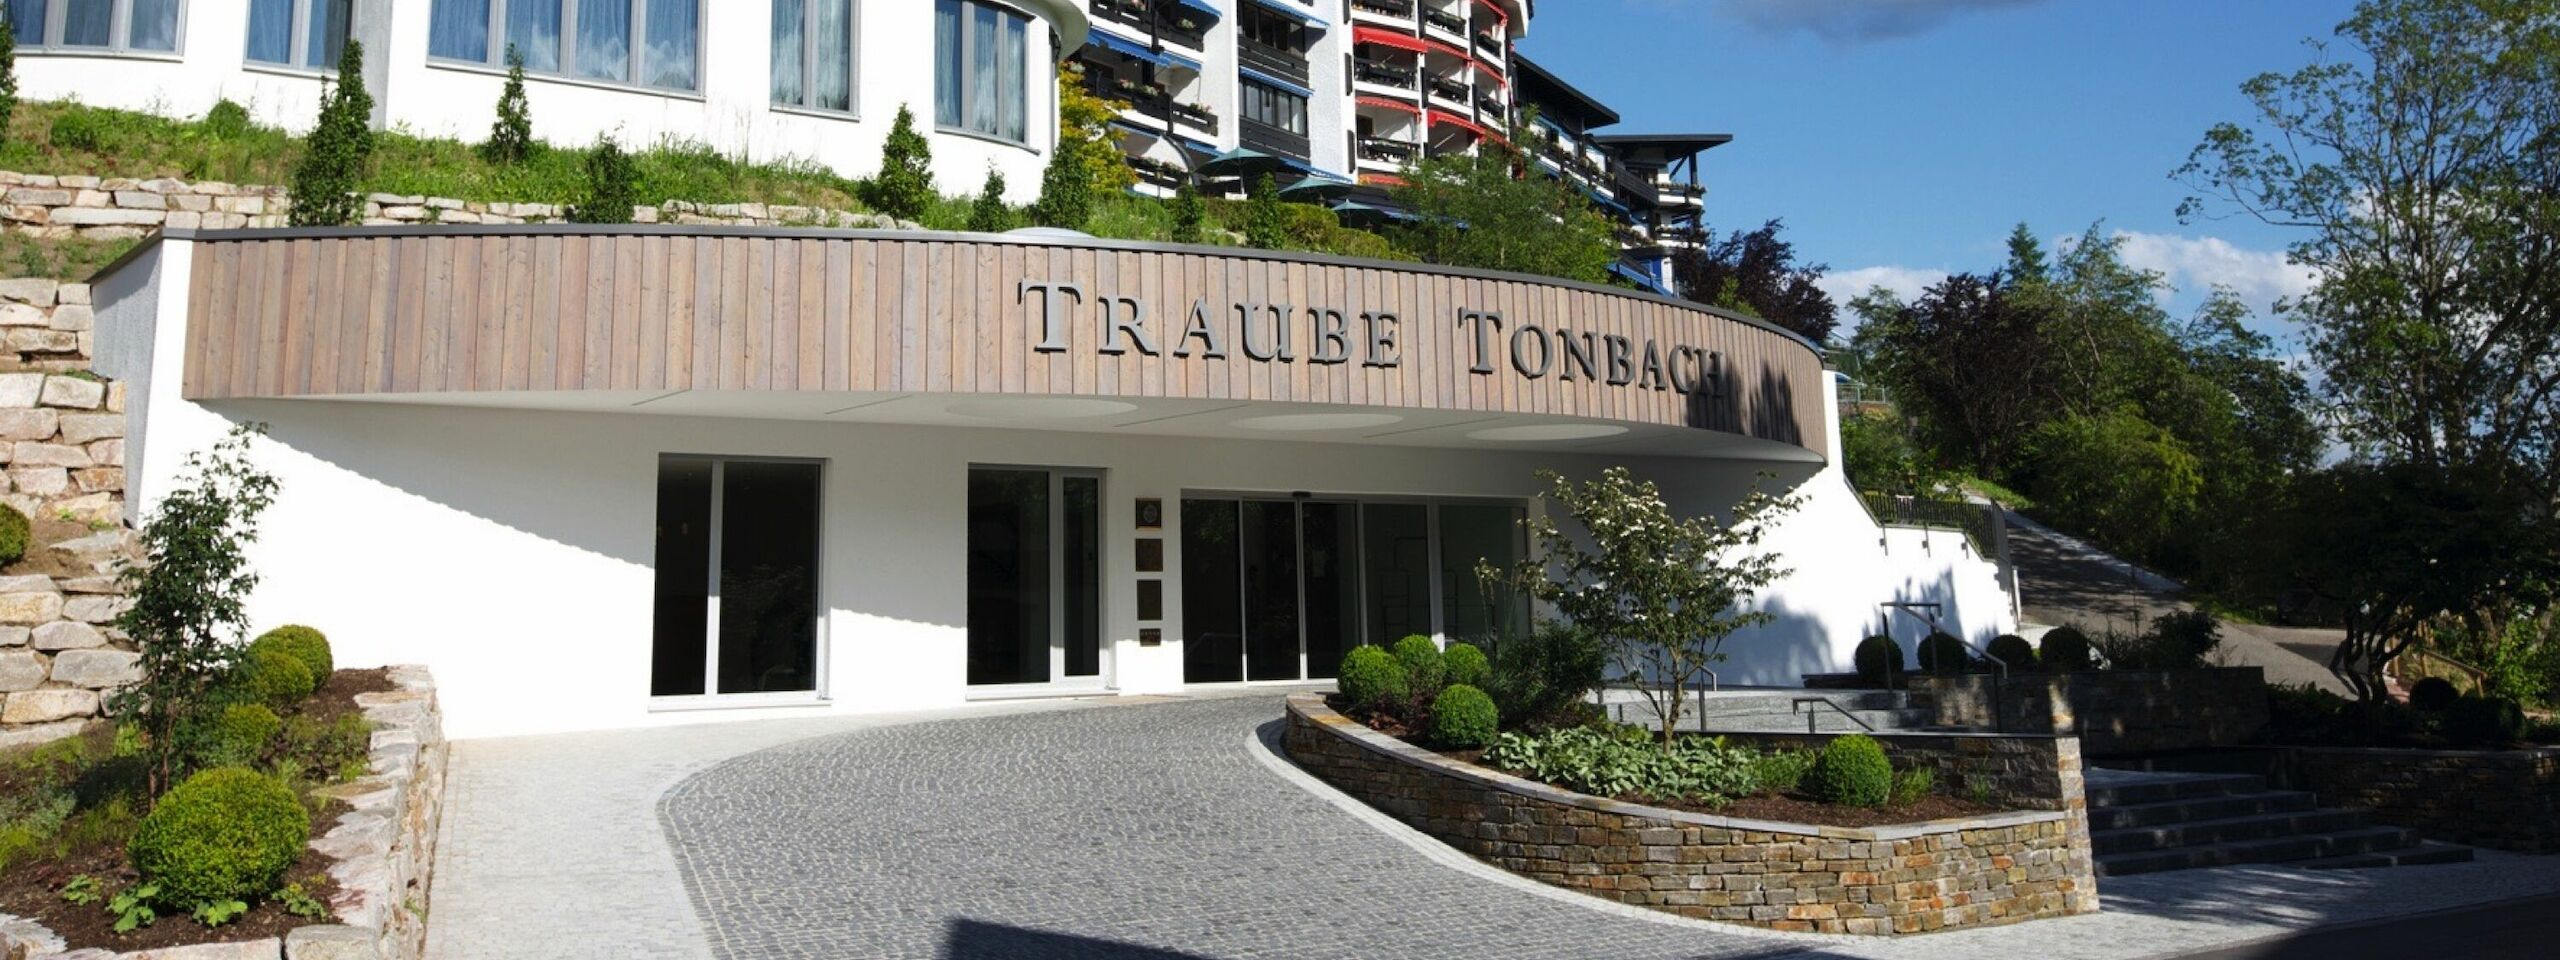 Traube Tonbach Main House Outside View Entrance